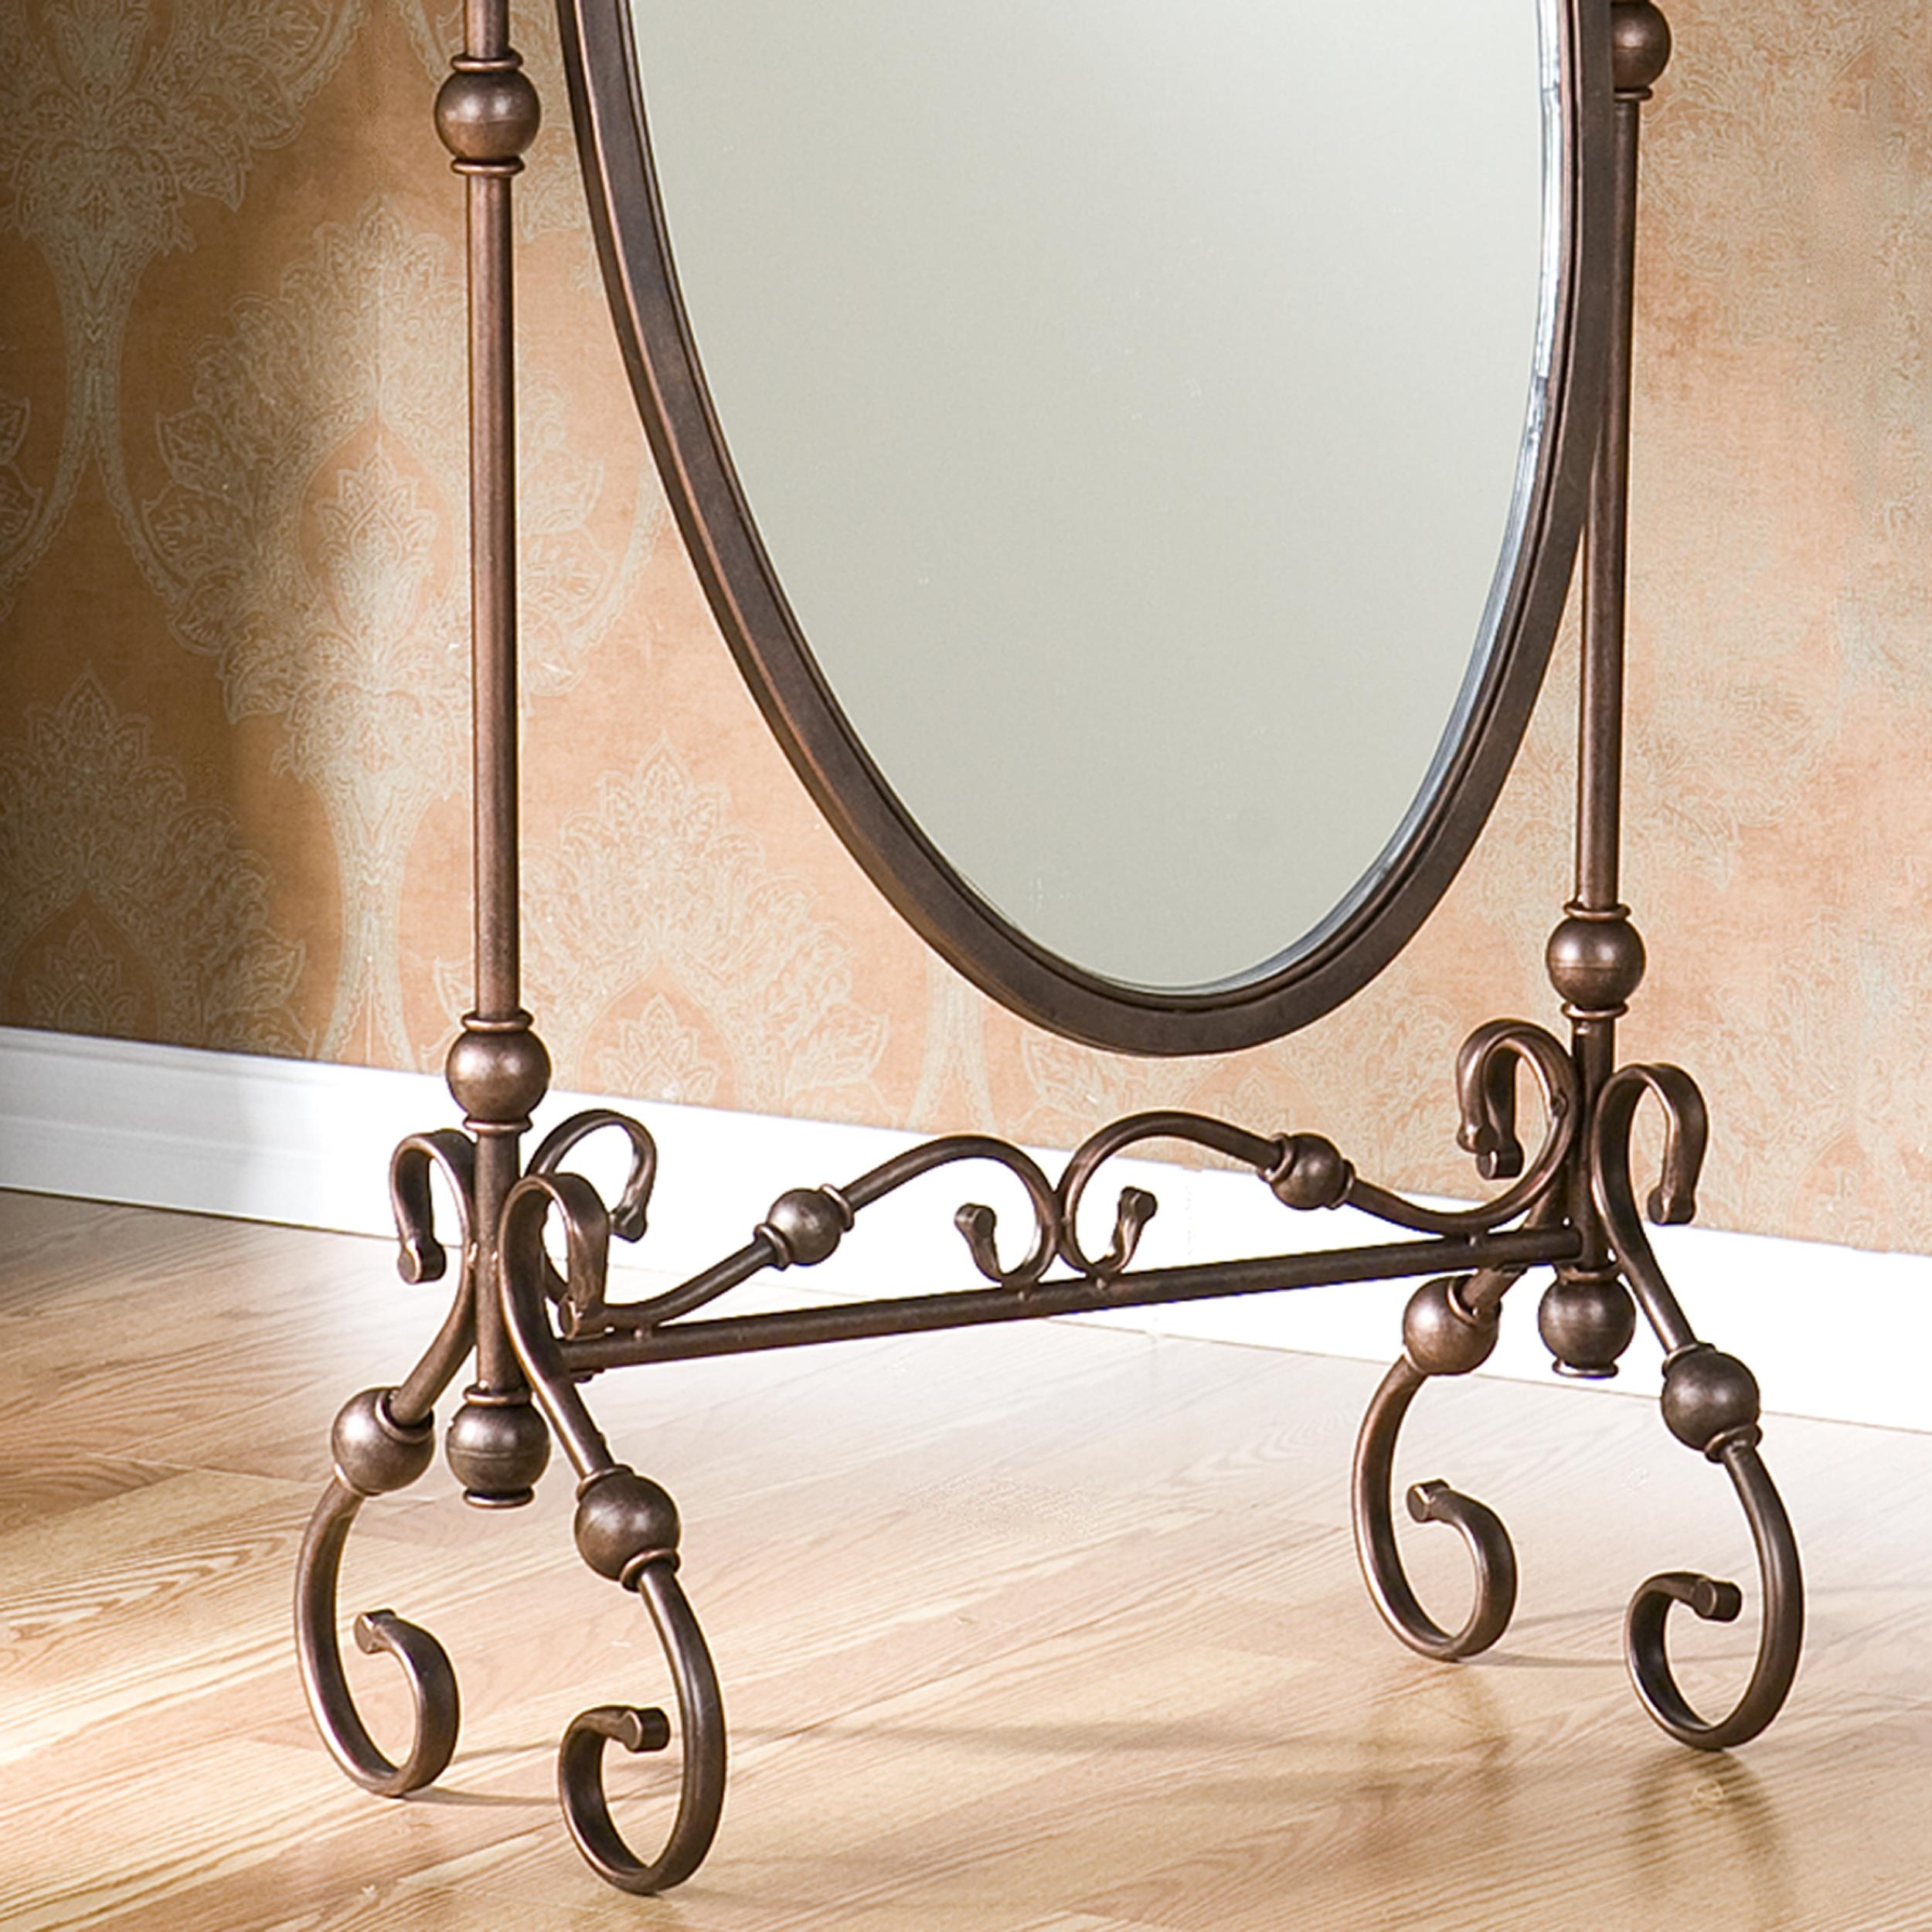 Featured Image of Wrought Iron Floor Mirror